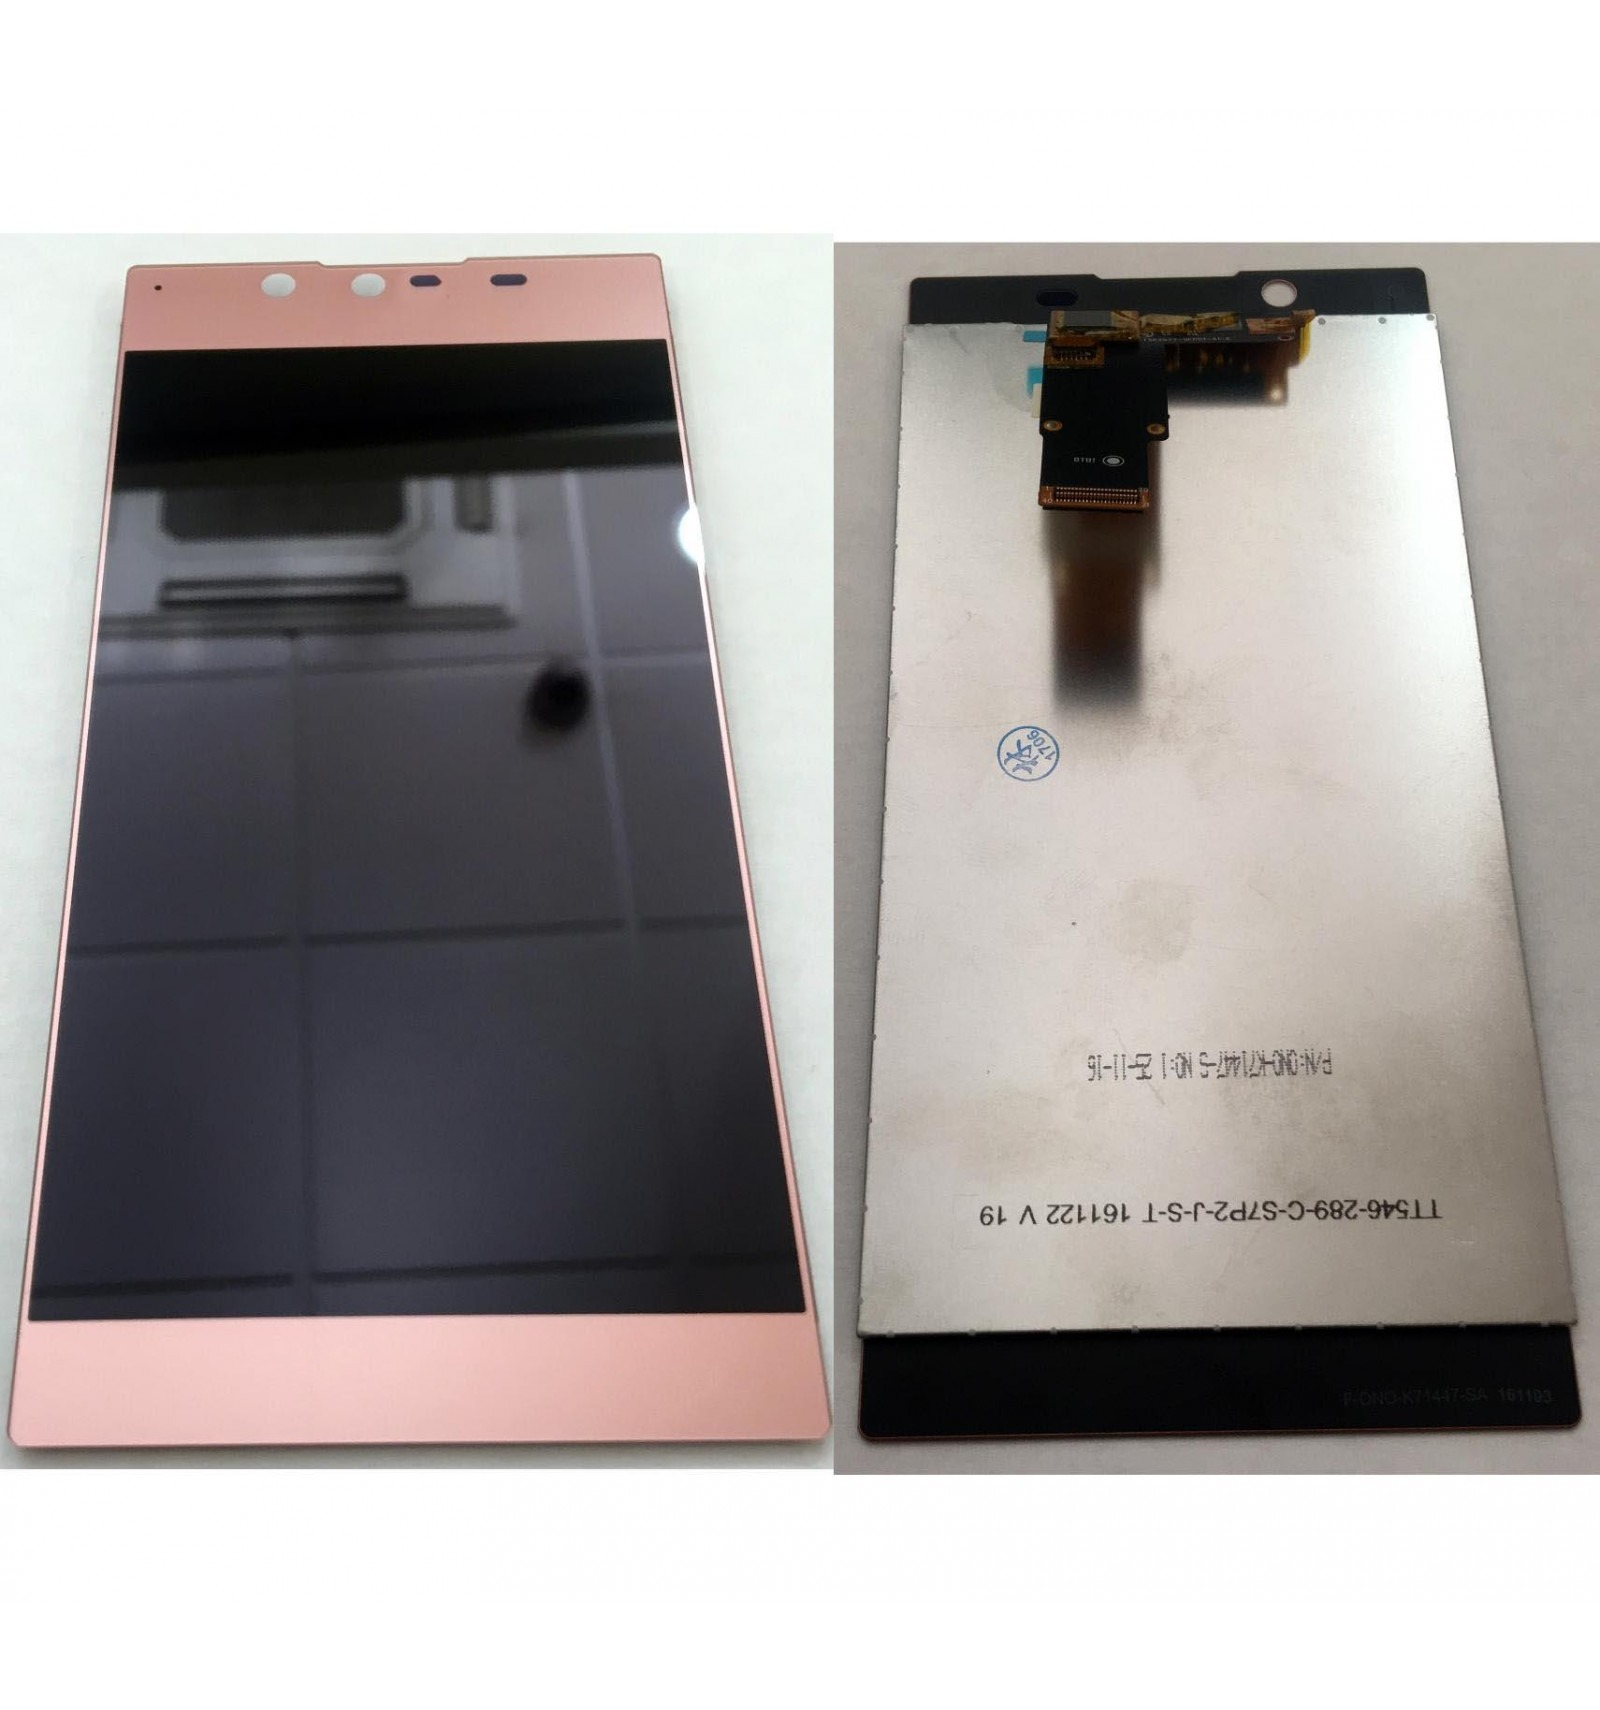 Sony Xperia L1 G3311 G3312 G3313 original display lcd with